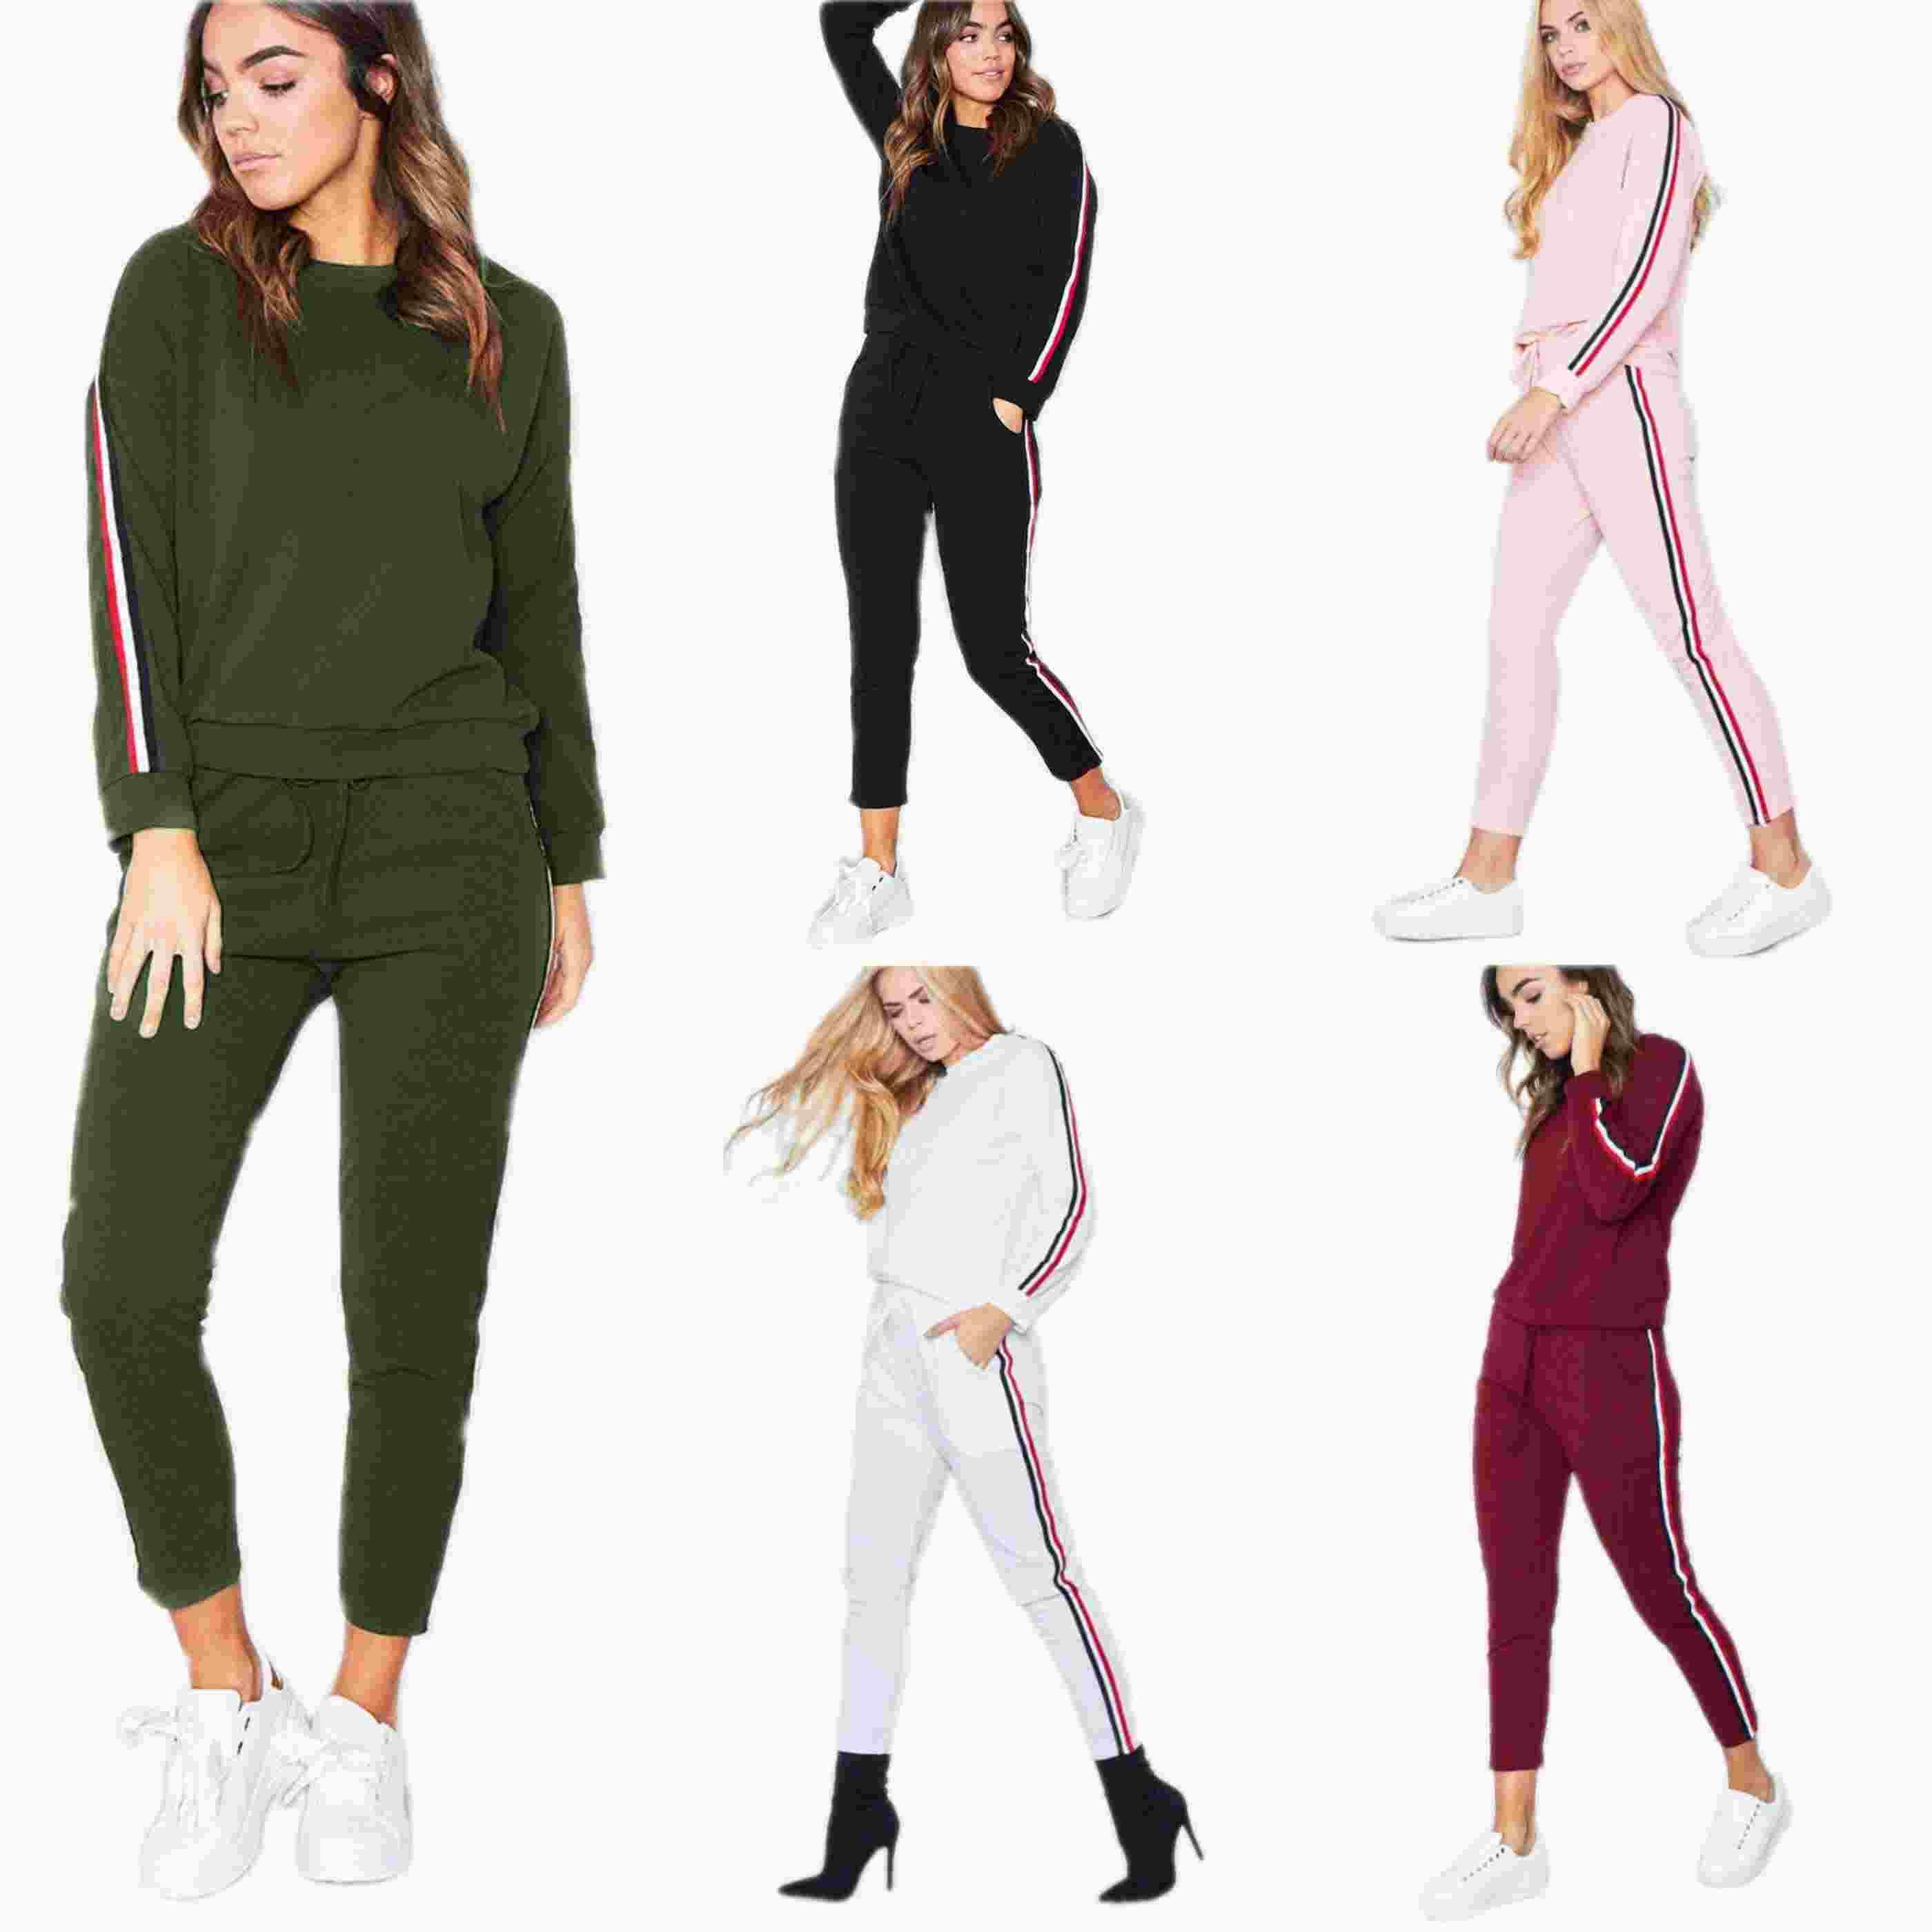 b5fdb0894a09 2019 Jumpsuit 2017 Autumn Overalls Bodysuit For Women Sexy Strap Women S  Suit Playsuit Female Rompers Womens Jumpsuit Shorts Catsuit From Bidalina